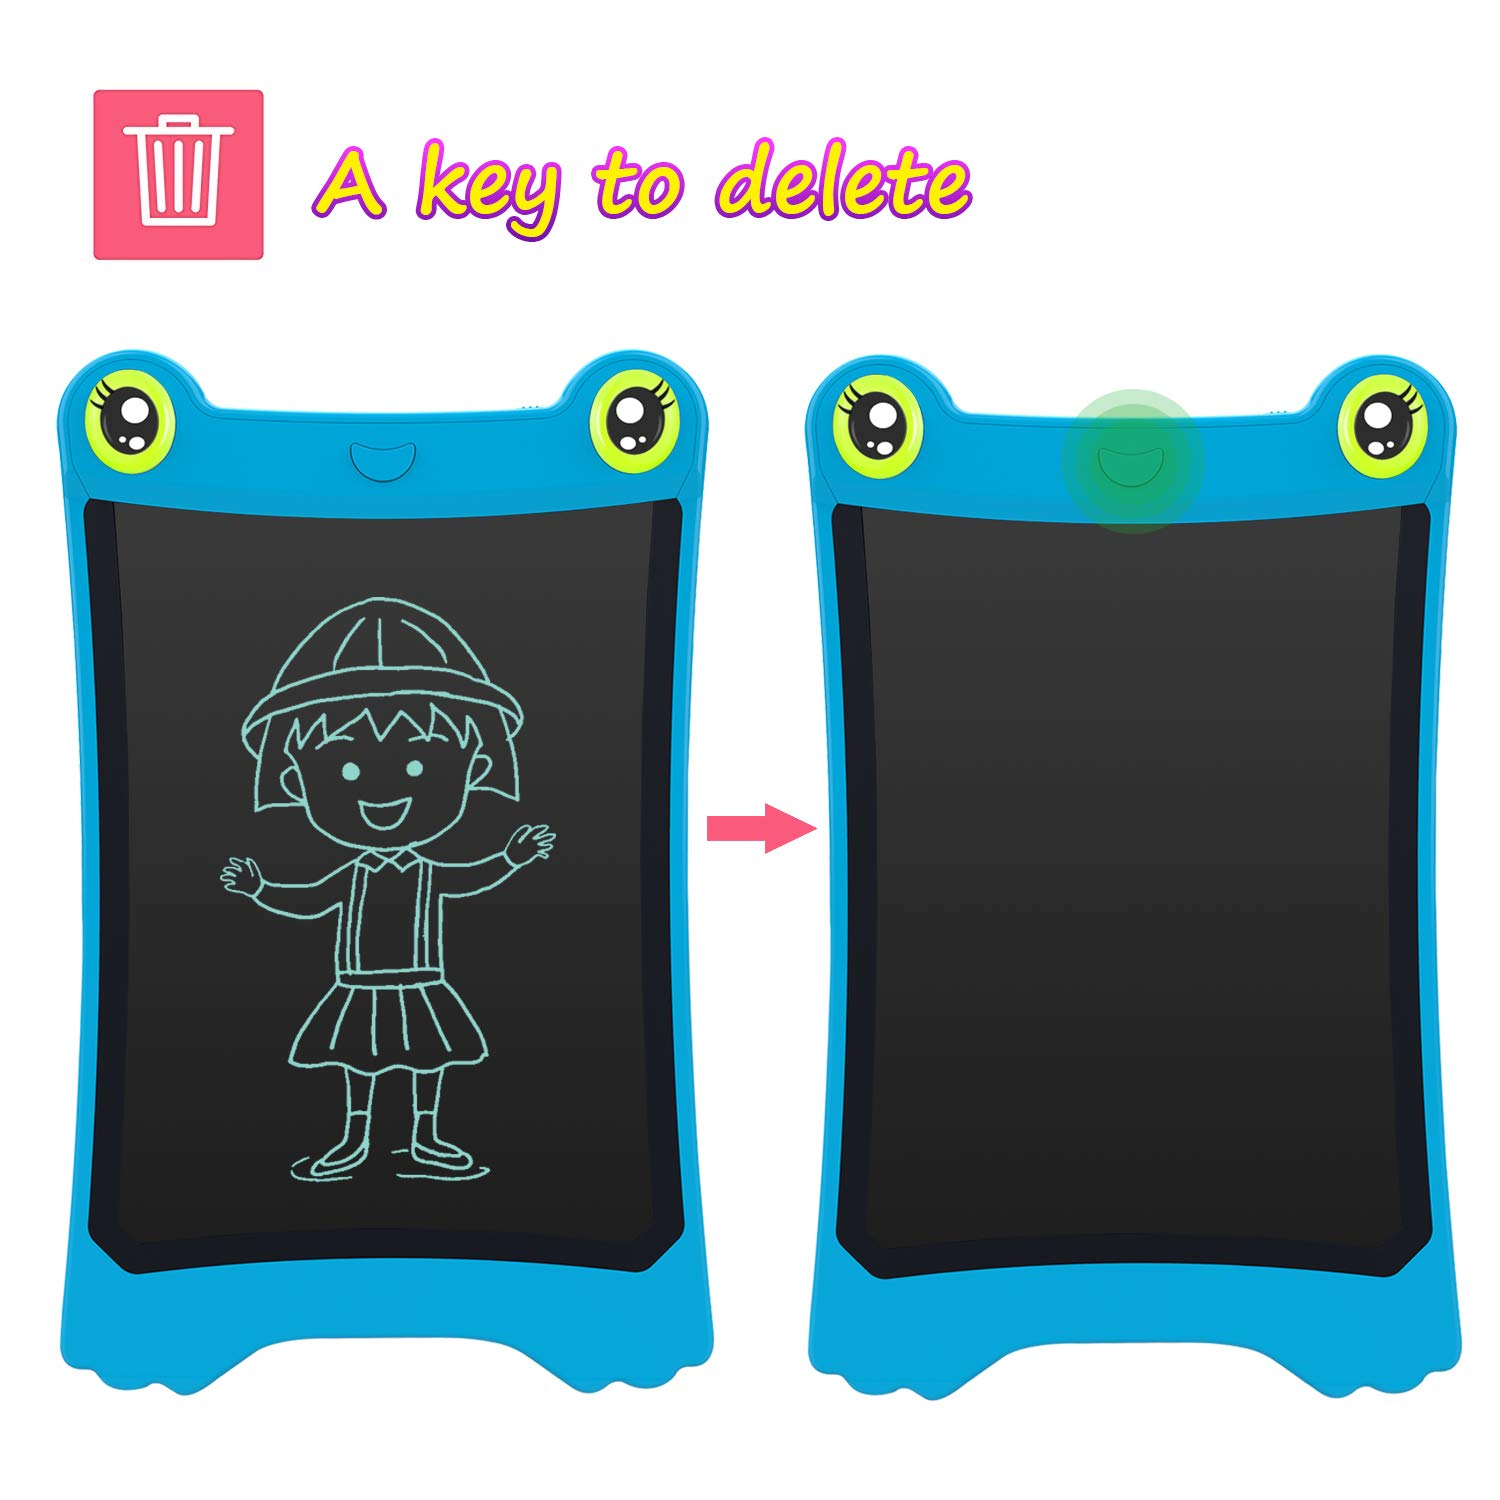 NEWYES 8.5 Inch LCD Writing Tablet Updated Frog Pad Children Electronic Doodle Board Jot Digital E-Writer Kids Scribble Toy with Lock Function Blue by NEWYES (Image #4)